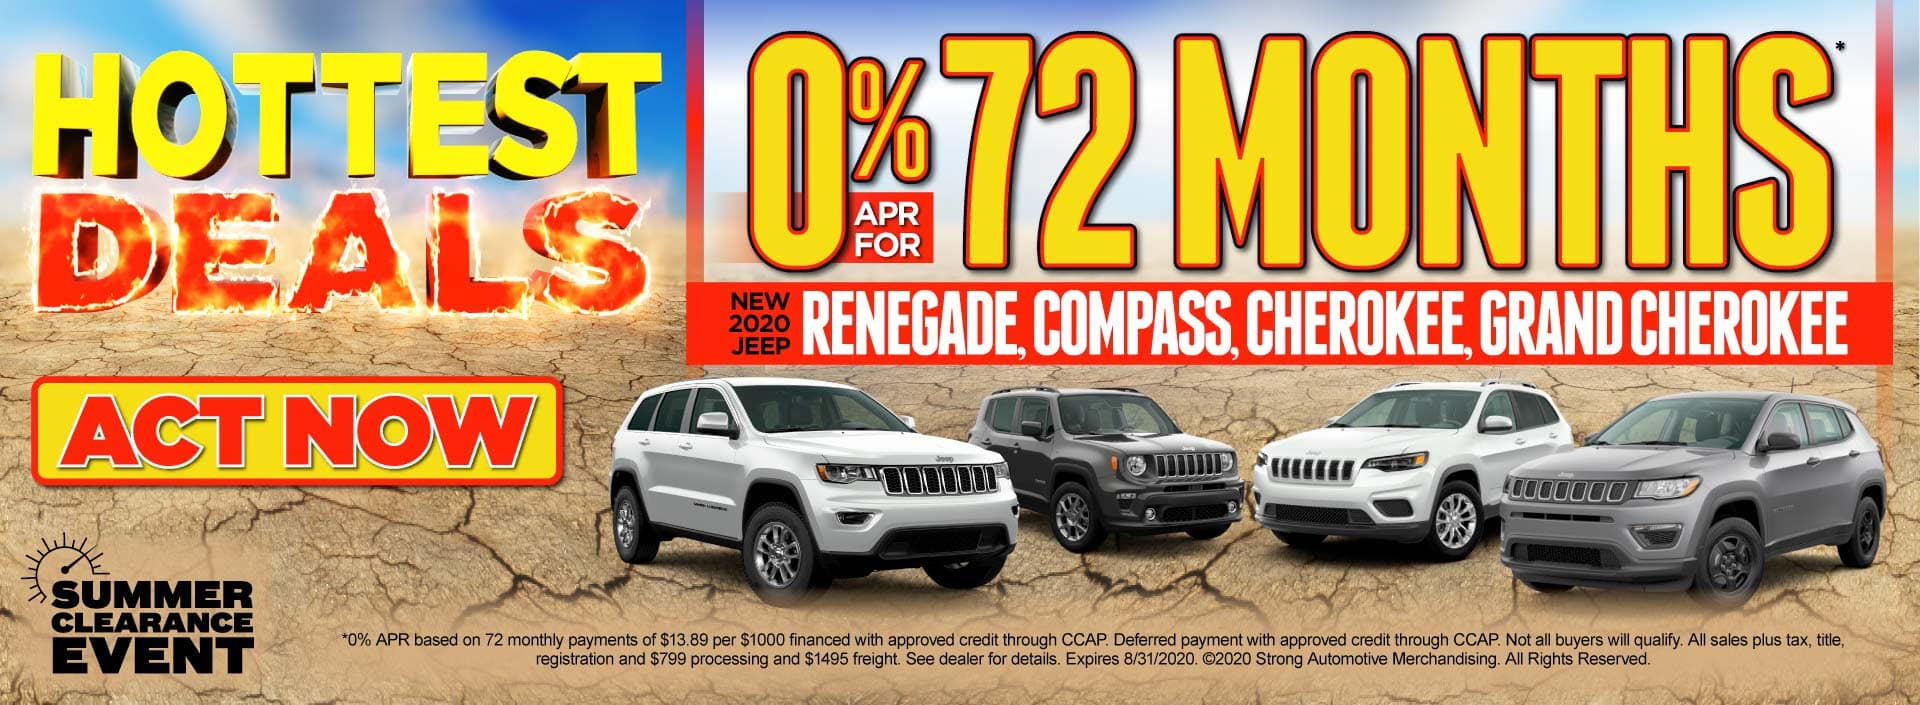 0% APR for 72 months on new 2020 Jeep Renegade, Compass, Cherokee, and Grand Cherokee - Click to View Inventory